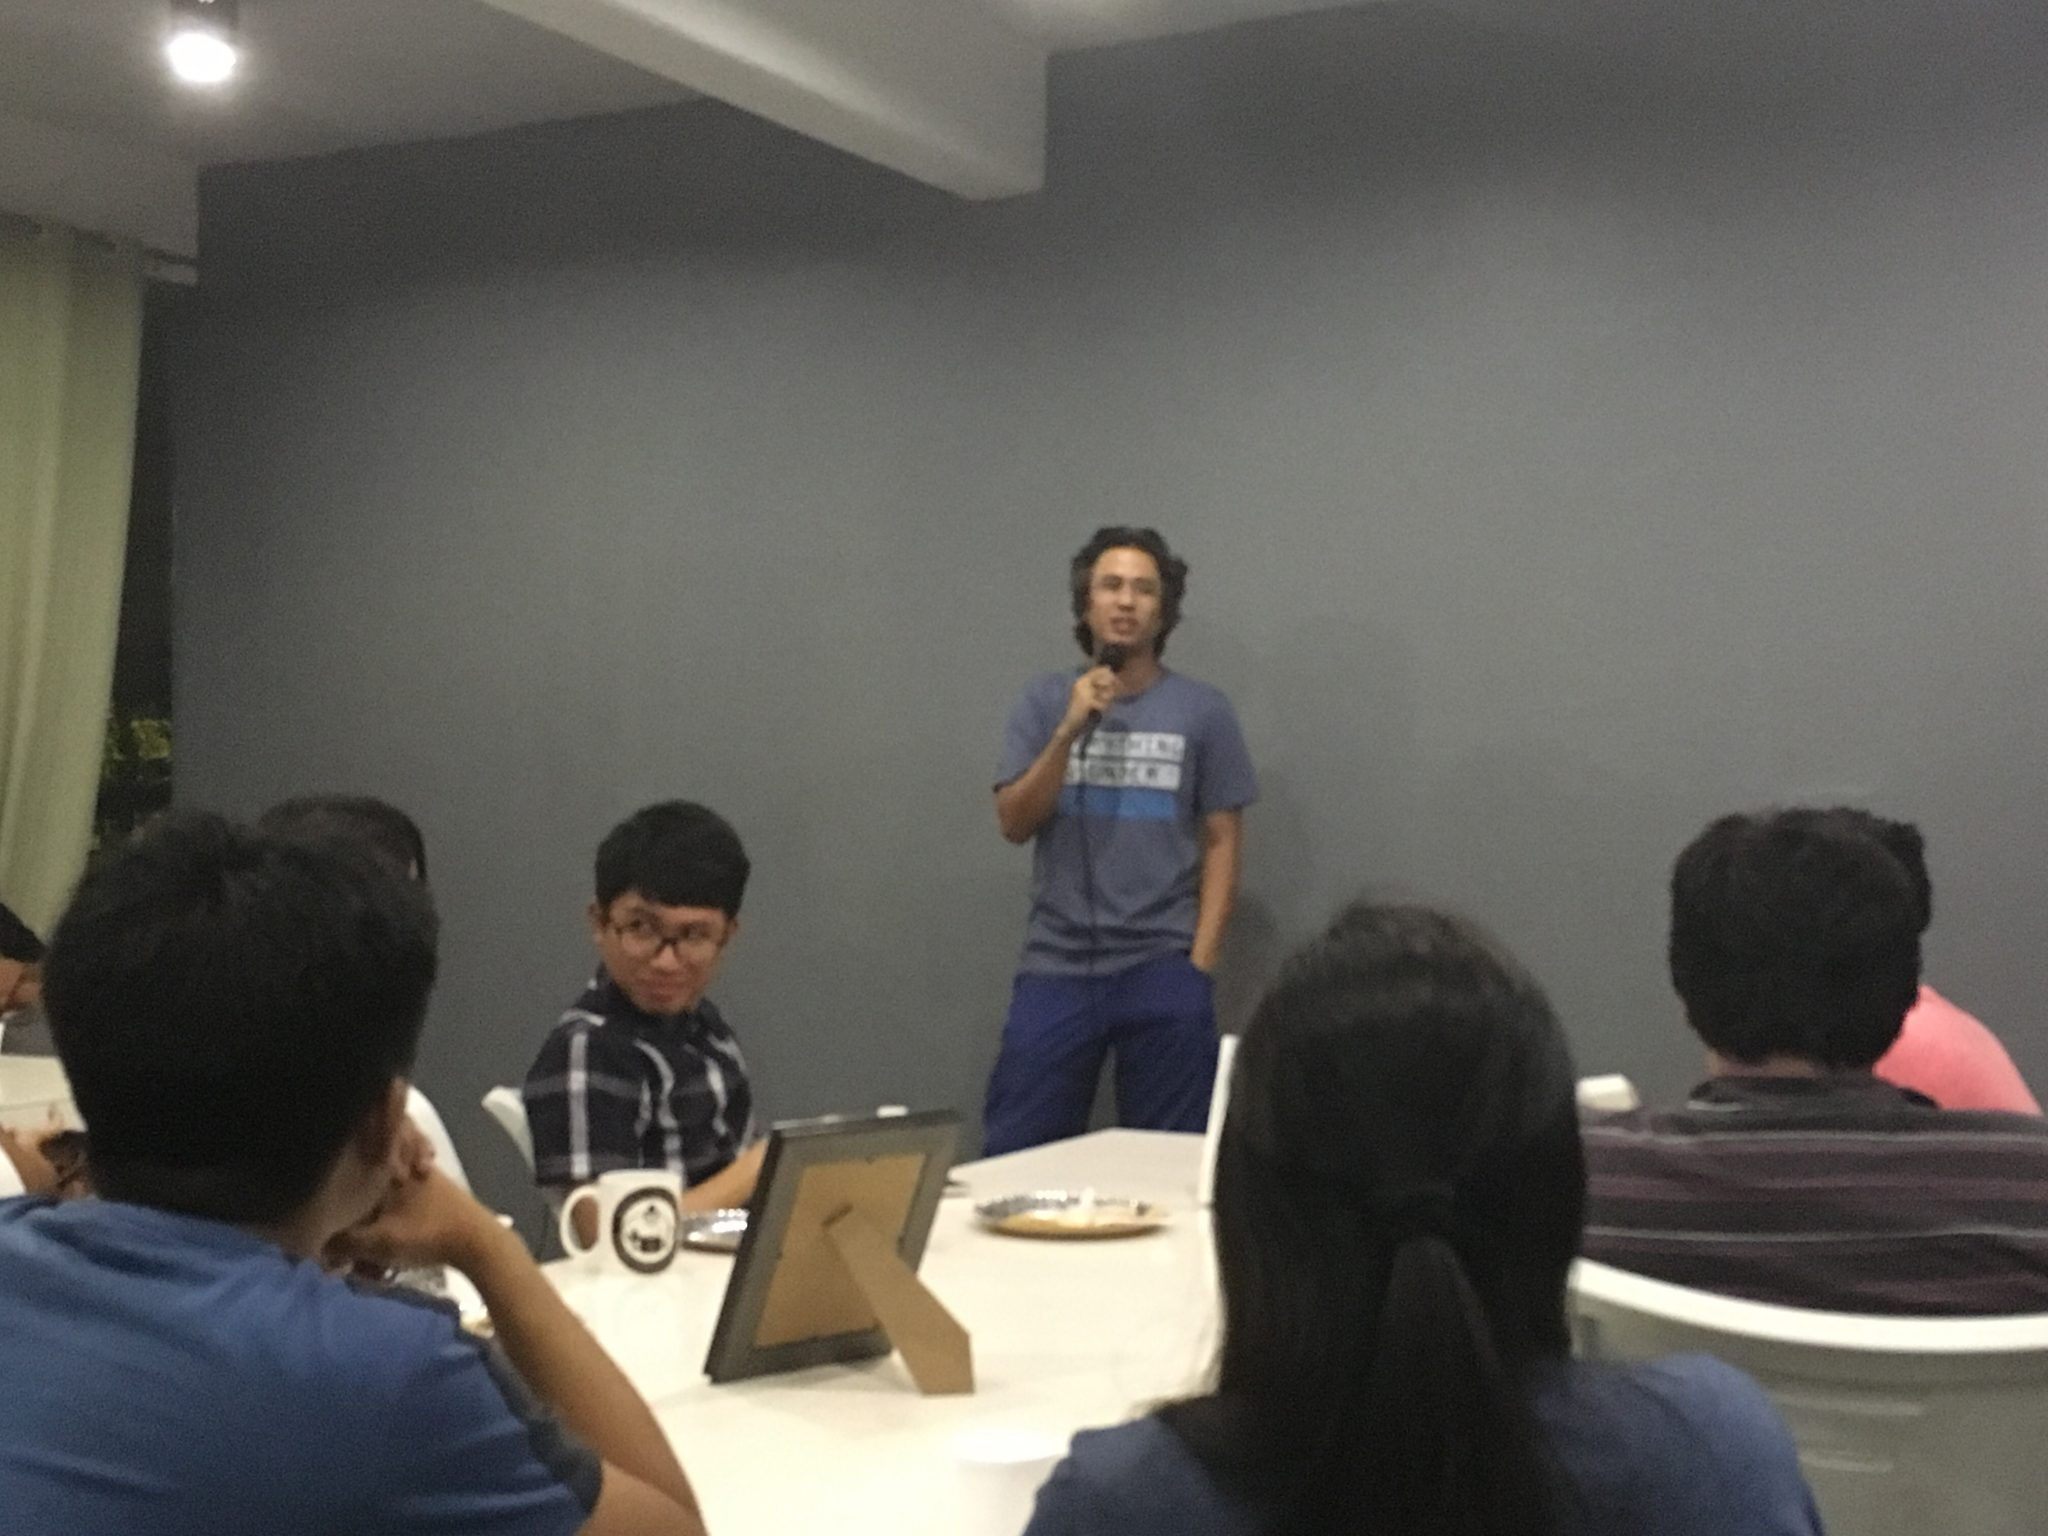 Jet Dario, DevCon Lead sharing how DevCon Iloilo started